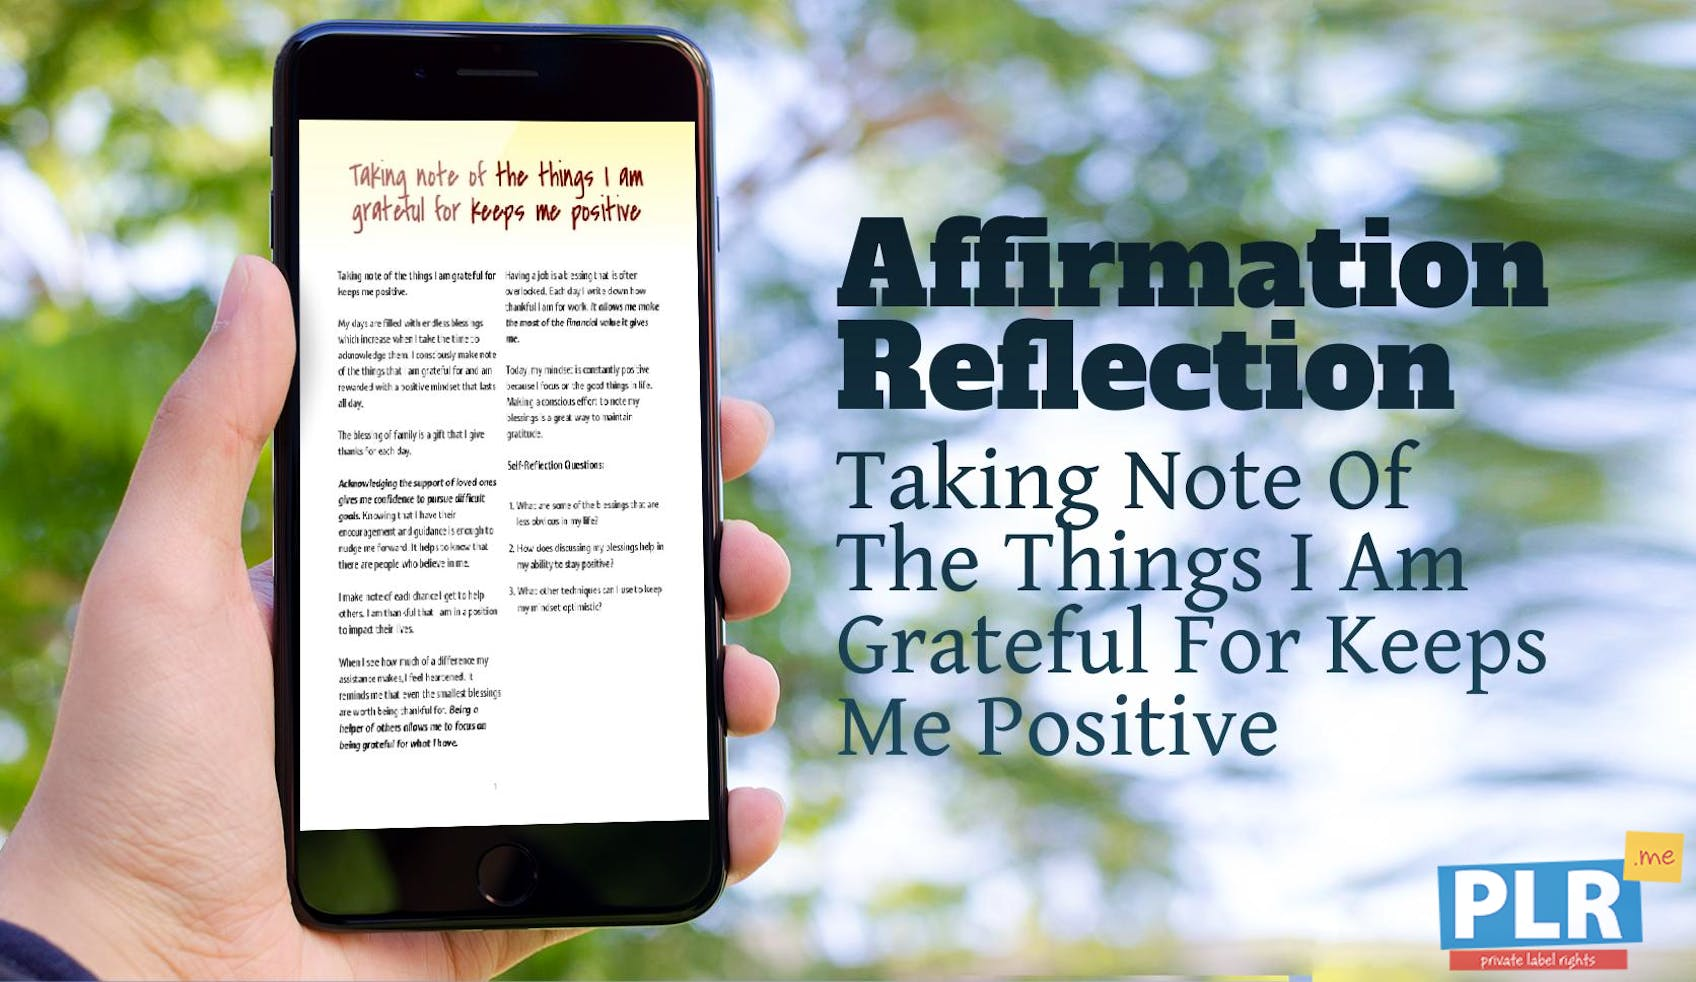 Taking Note Of The Things I Am Grateful For Keeps Me Positive